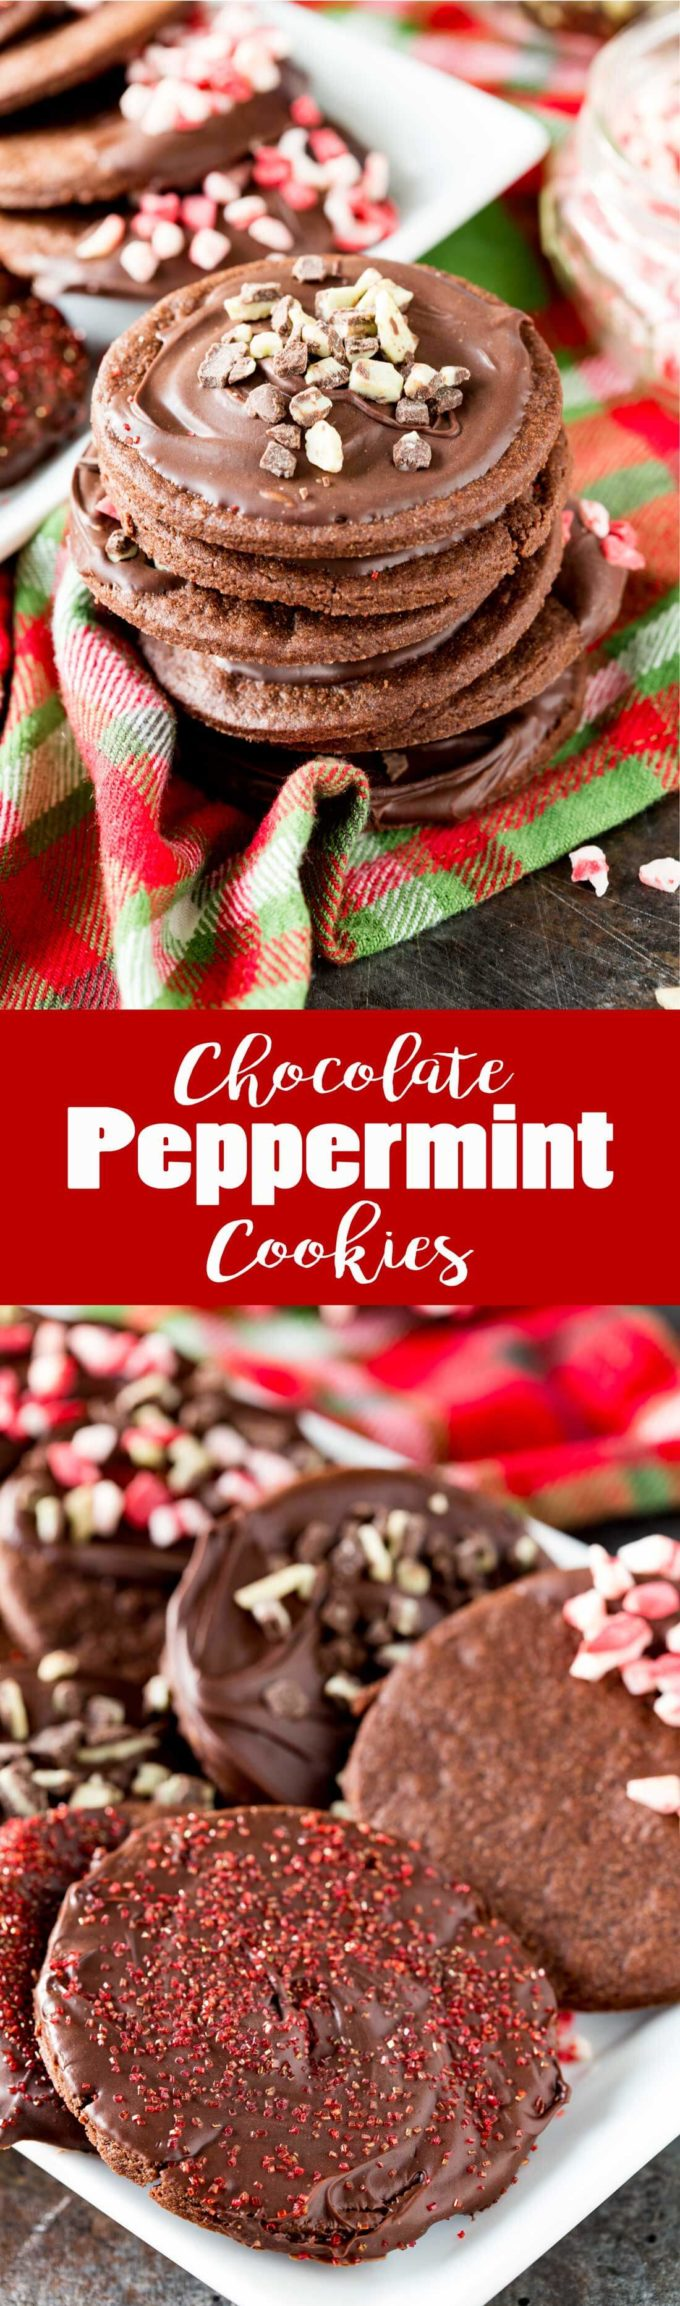 Chocolate Peppermint Cookies are a delicious easy Christmas cookie that embody the flavors of the season.